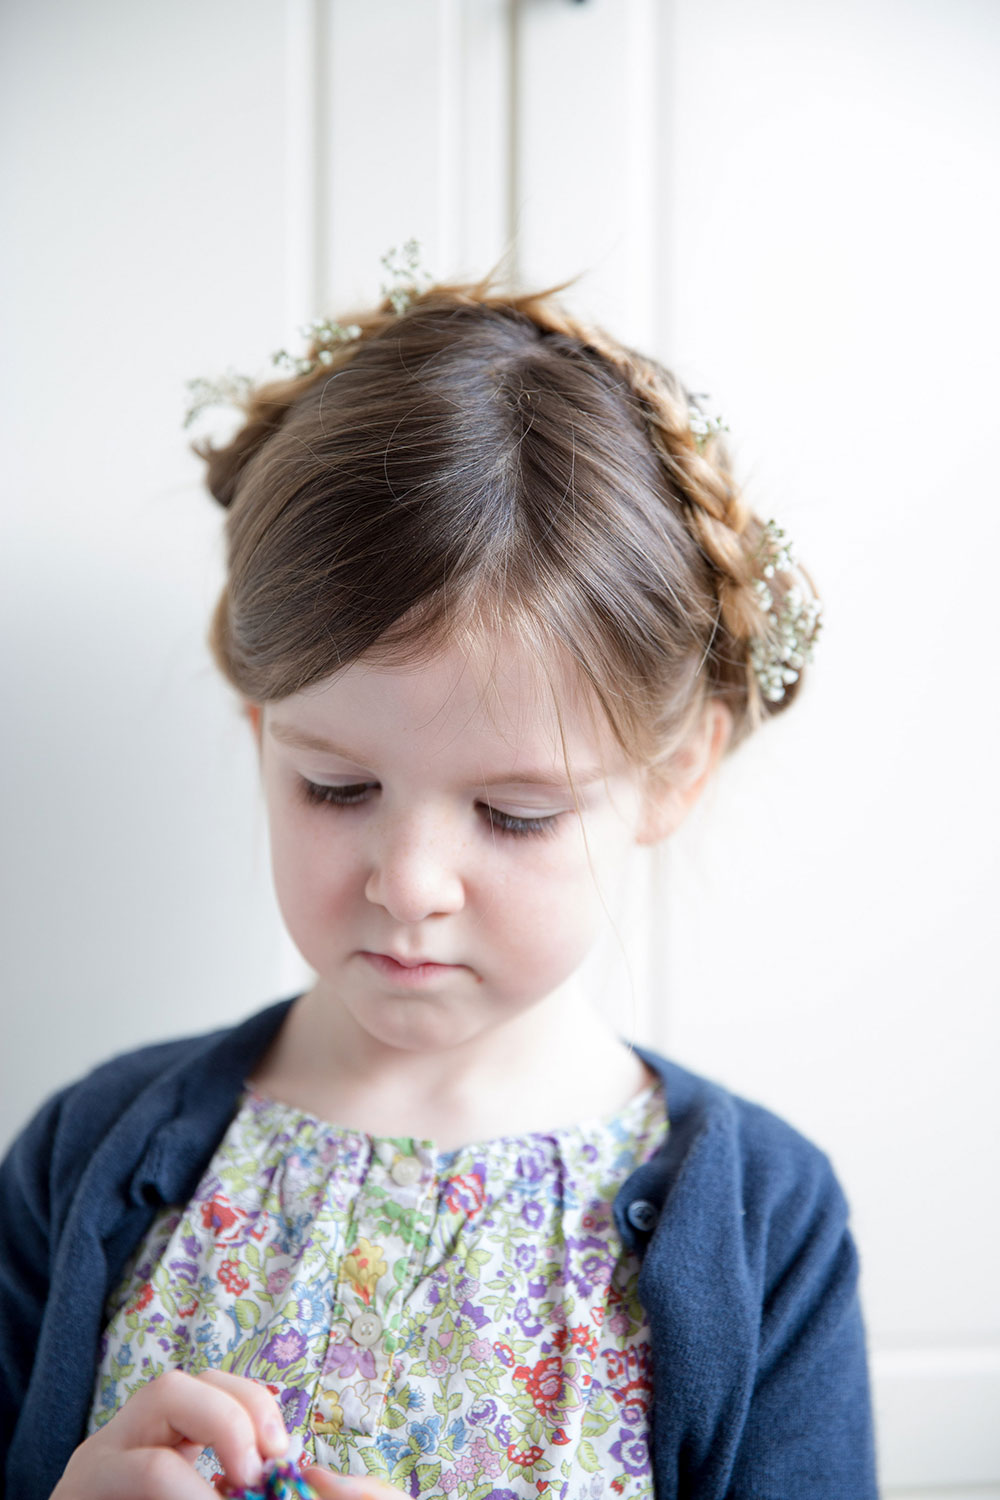 Hair Style Double Pinned Up Braids Babyccino Kids Daily Tips